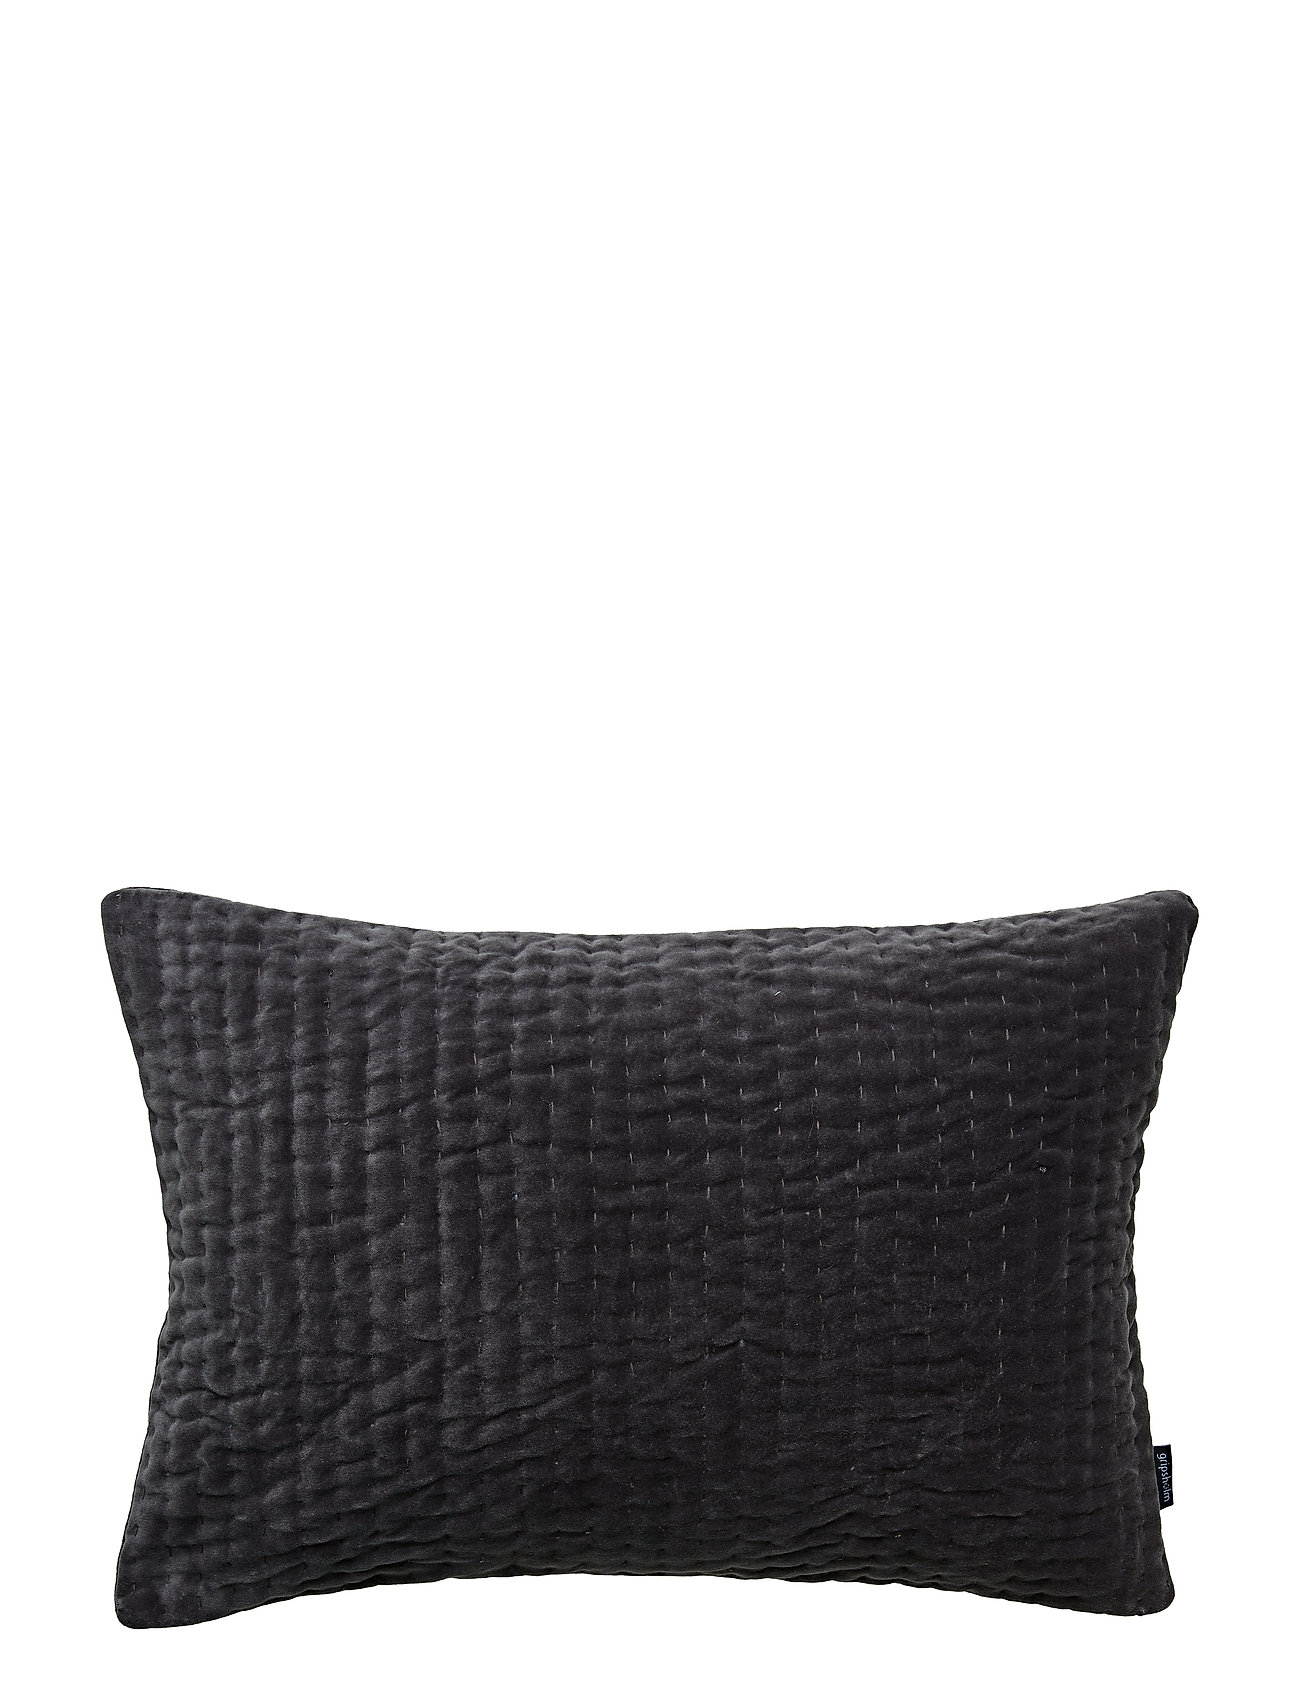 Gripsholm CUSHION COVER ELLIOT GOTS - ANTHRACITE